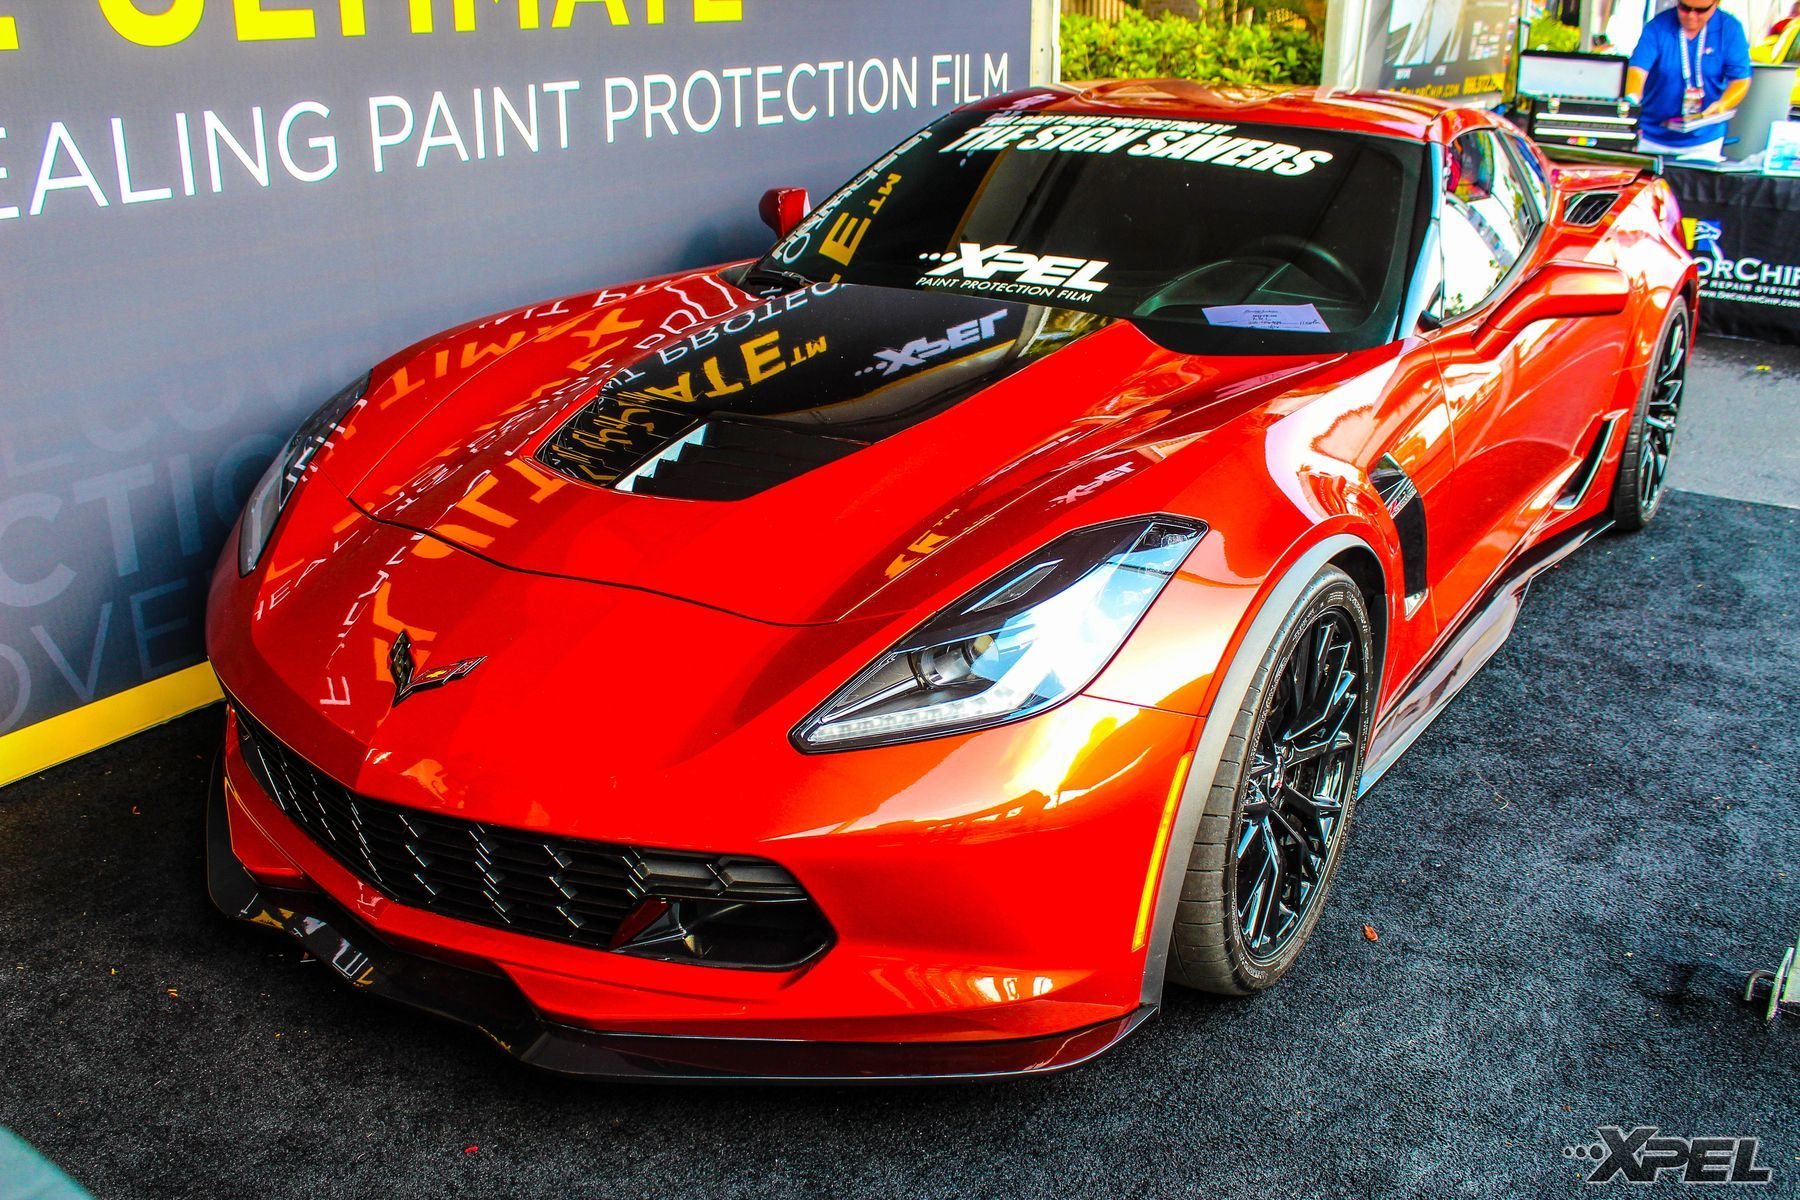 Chevrolet Corvette Z06 | XPEL Booth at Barrett Jackson West Palm Beach 2015